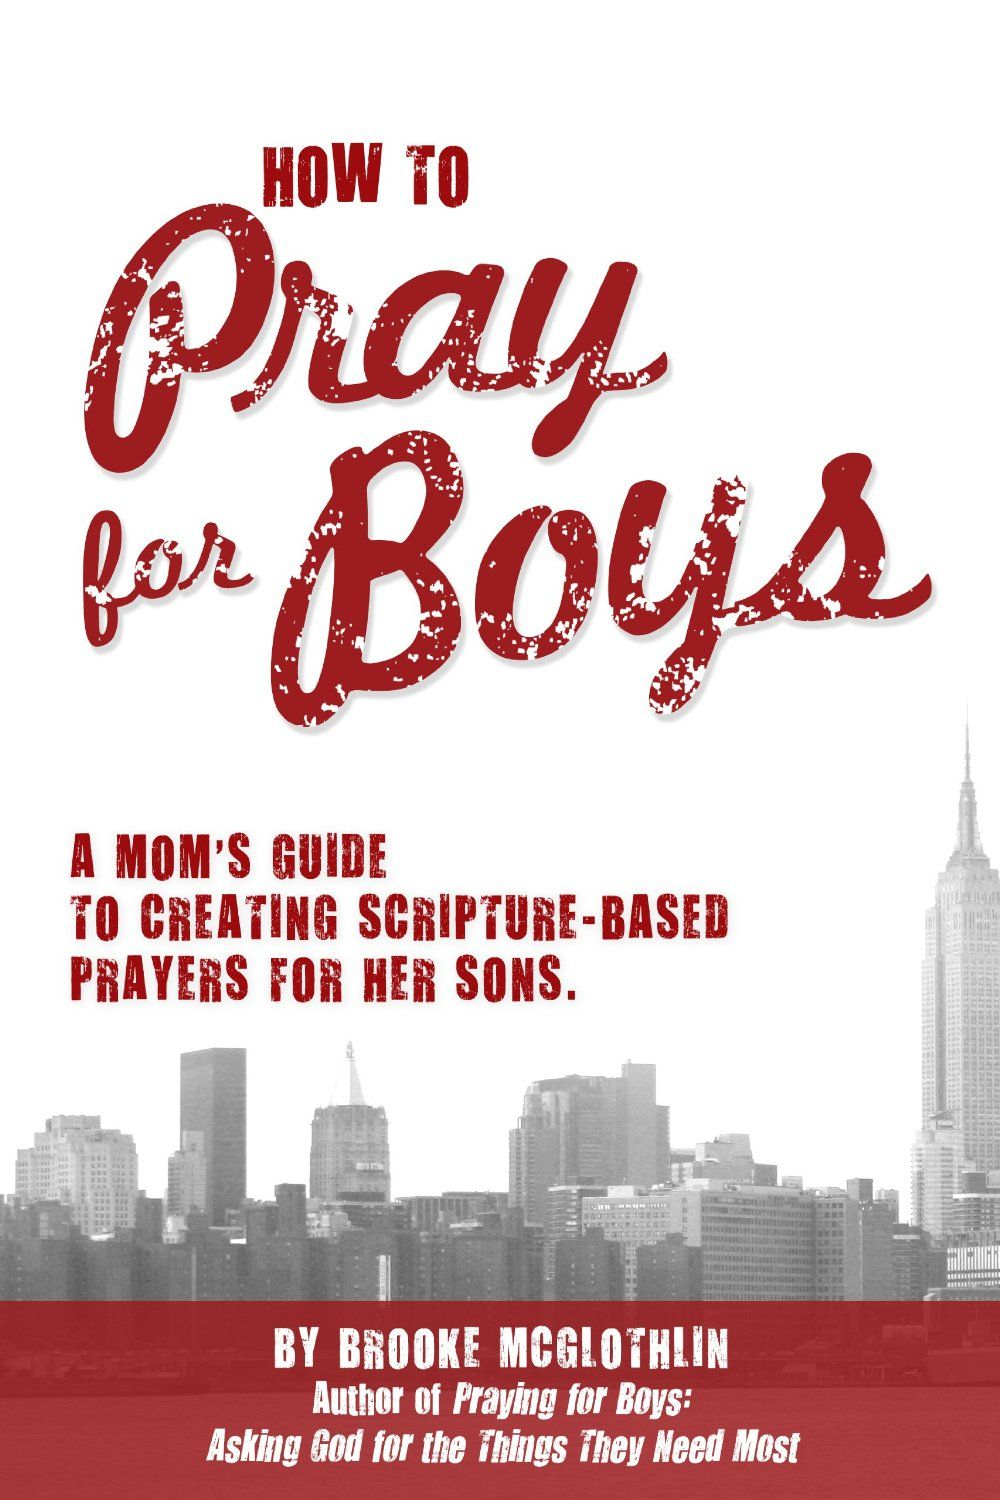 How to Pray for Boys: A Mom's Guide to Creating Scripture-Based Prayers for  Her Sons by Brooke McGlothlin ($4.83)